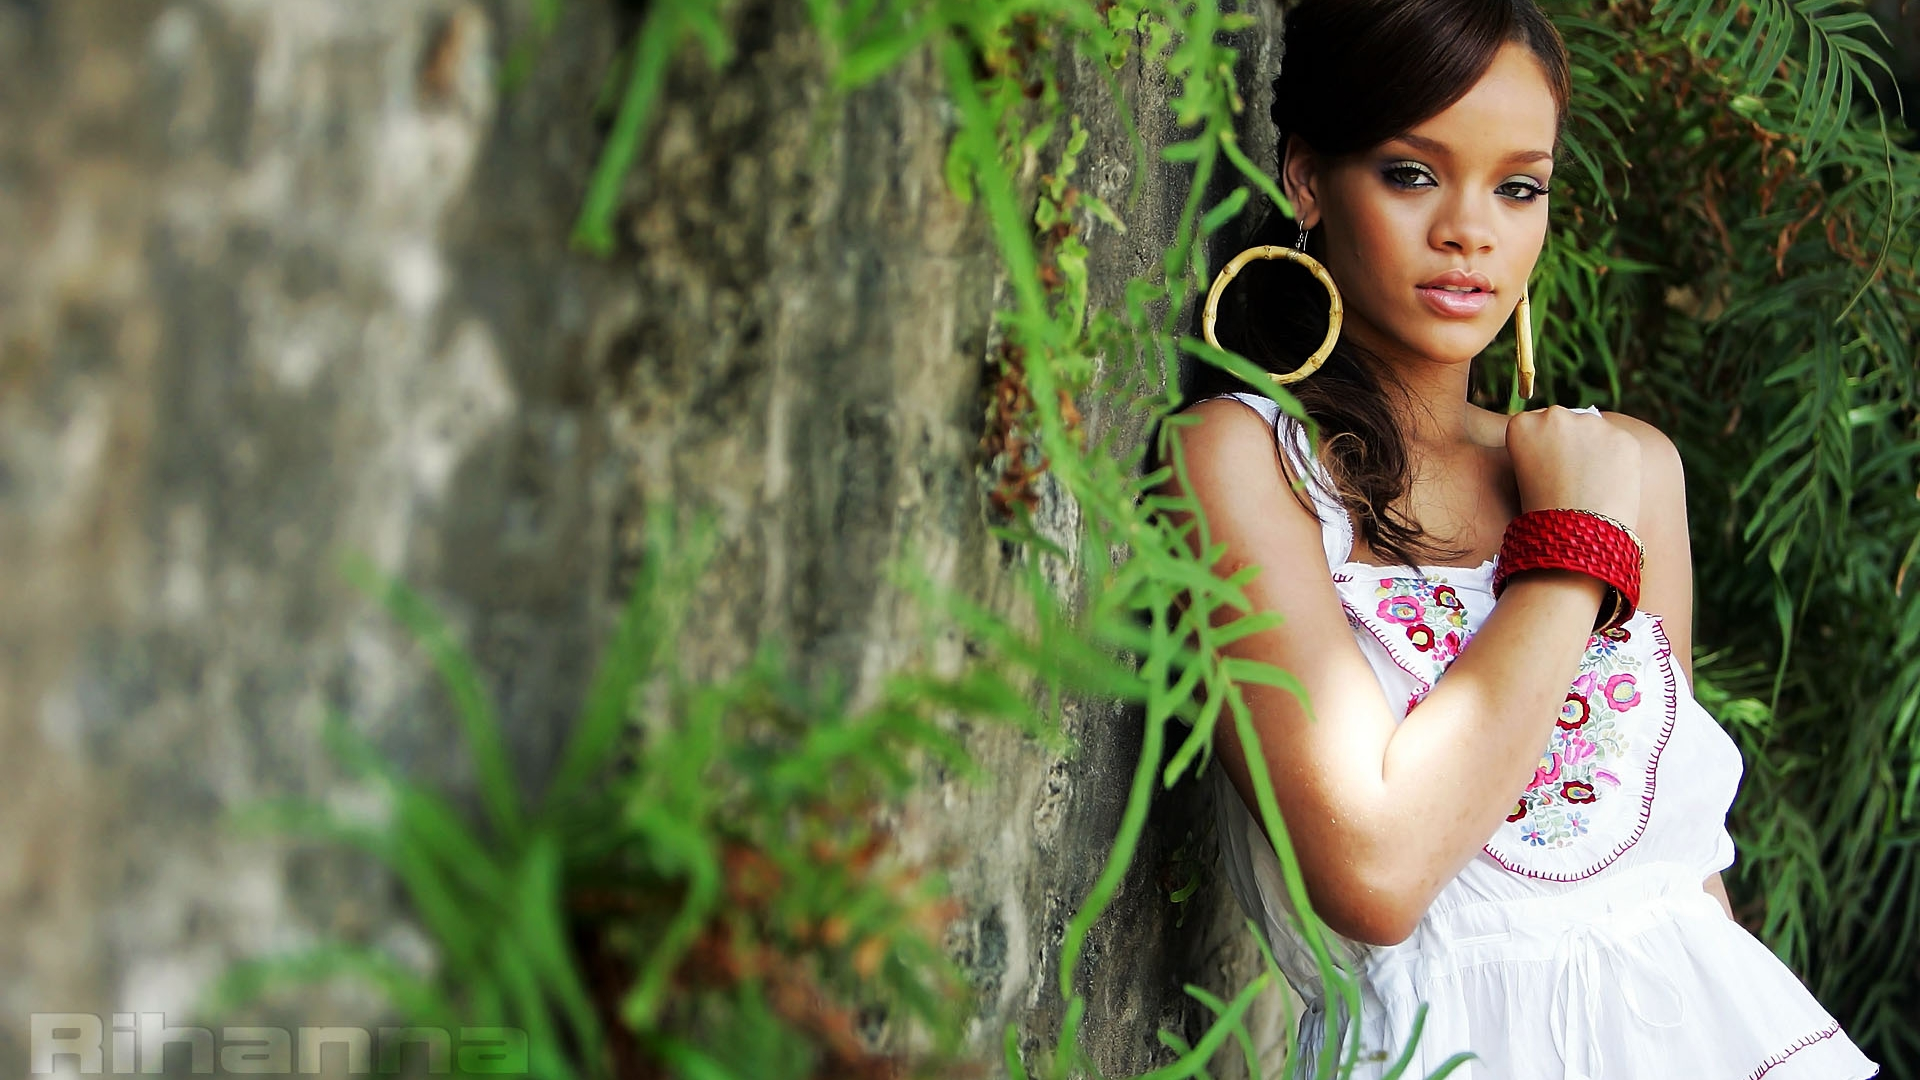 Girls Wallpapers Full HD 1080p 152   Rihanna   Girls Wallpapers Full 1920x1080